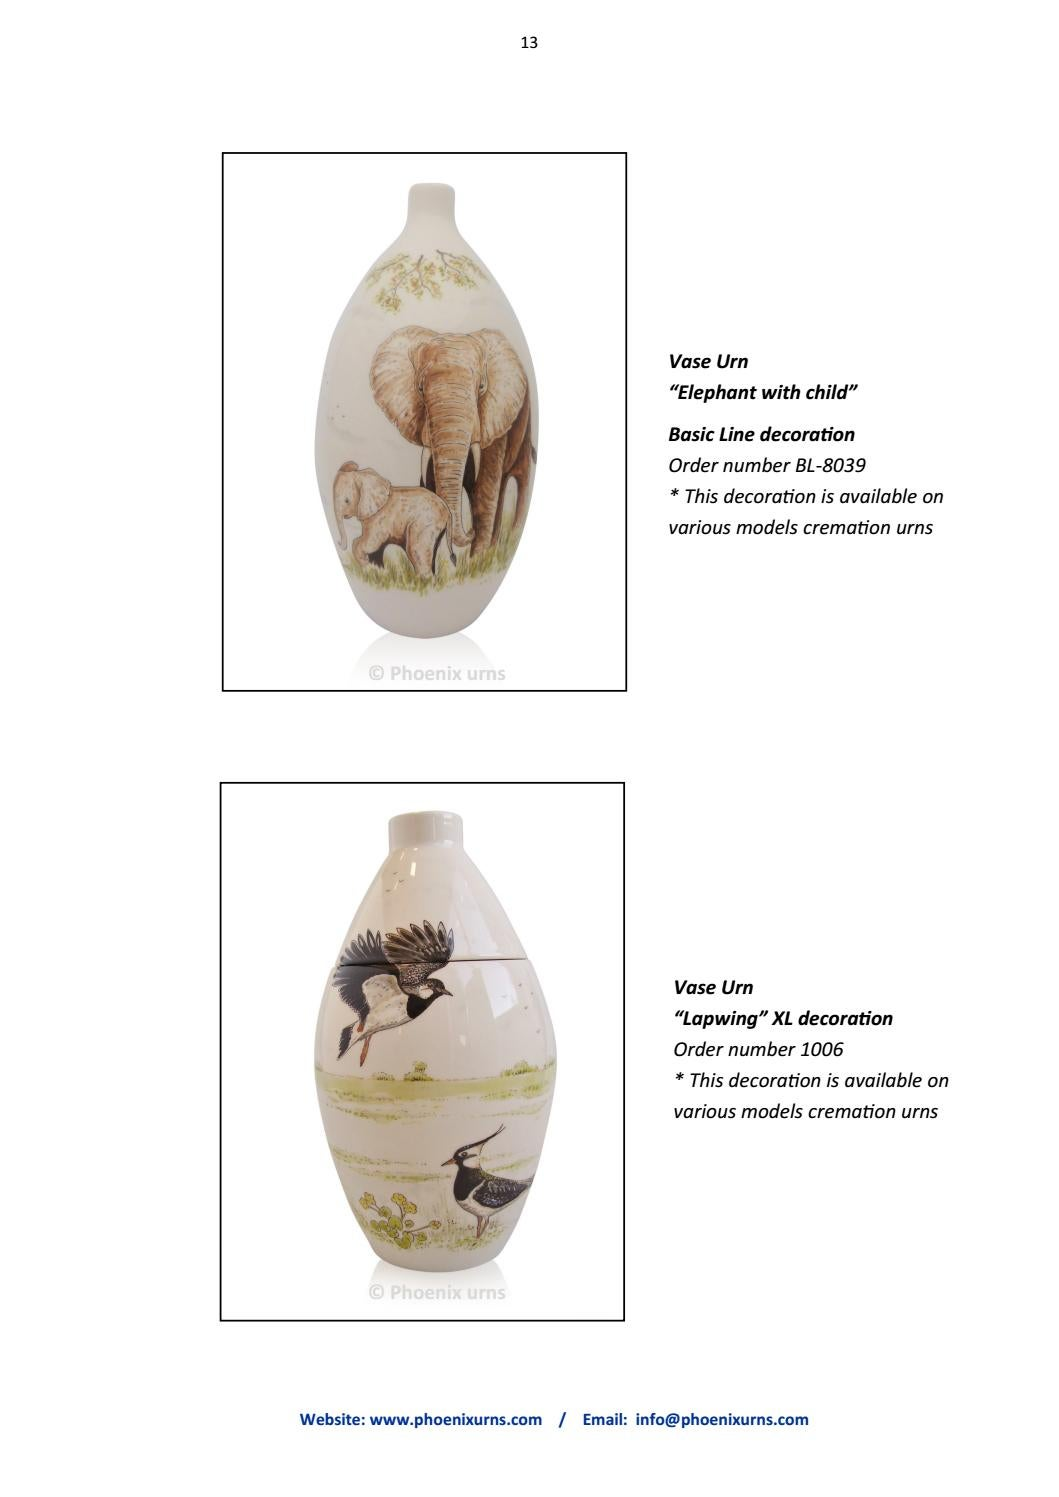 Catalogue 2018 - 2019 PHOENIX URNS hand painted cremation